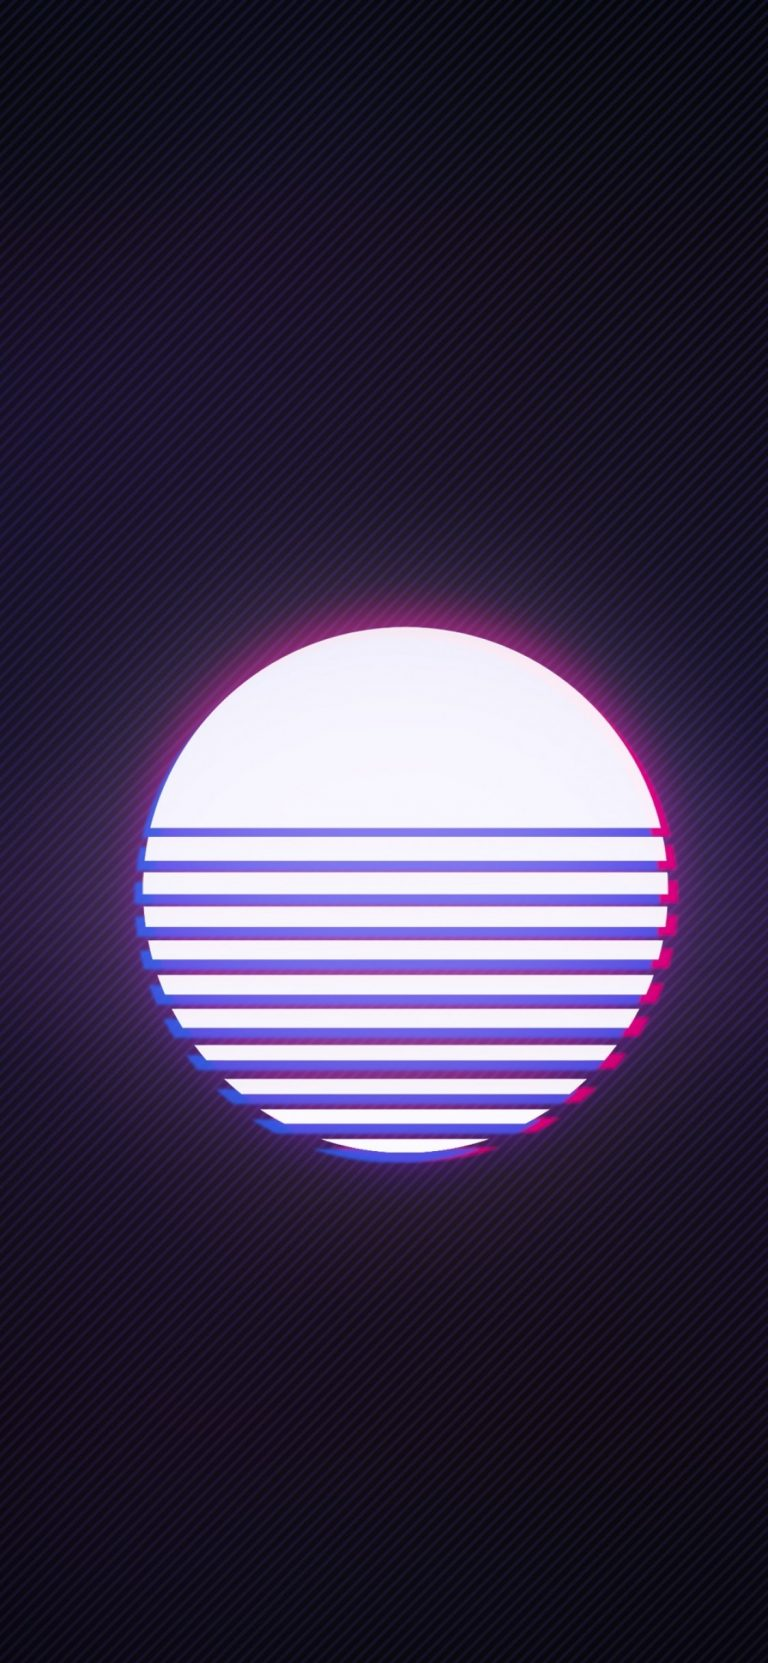 retrowave wallpaper 075